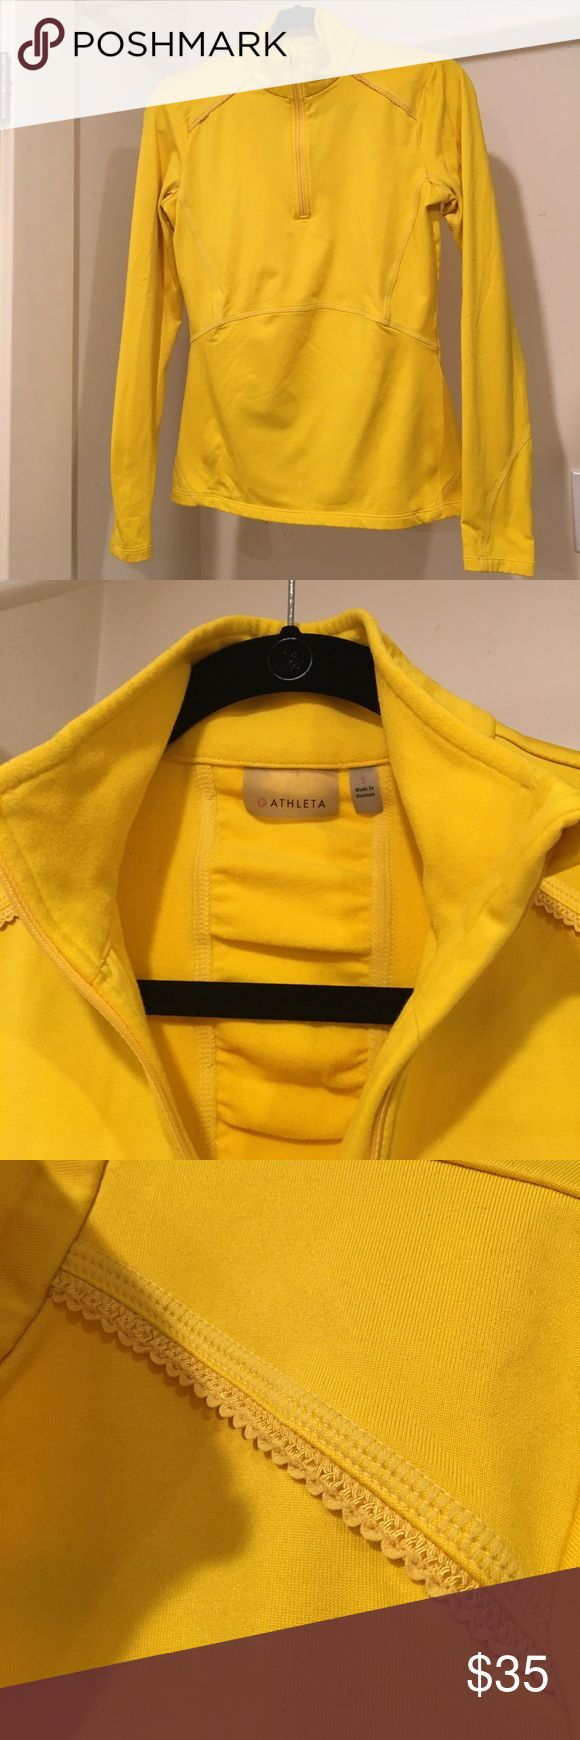 Athleta bright yellow poly/spandex 1/4 zip. Size S This is a wonderful bright fun yellow Athleta 1/4 zip heavyweight athletic shirt. Comes with fun detail trim, and ruching on back with back zipper pocket, reflective trim and thumb holes. Great for early morning workouts or runs to cut the chill. Great condition. Athleta Tops Sweatshirts & Hoodies